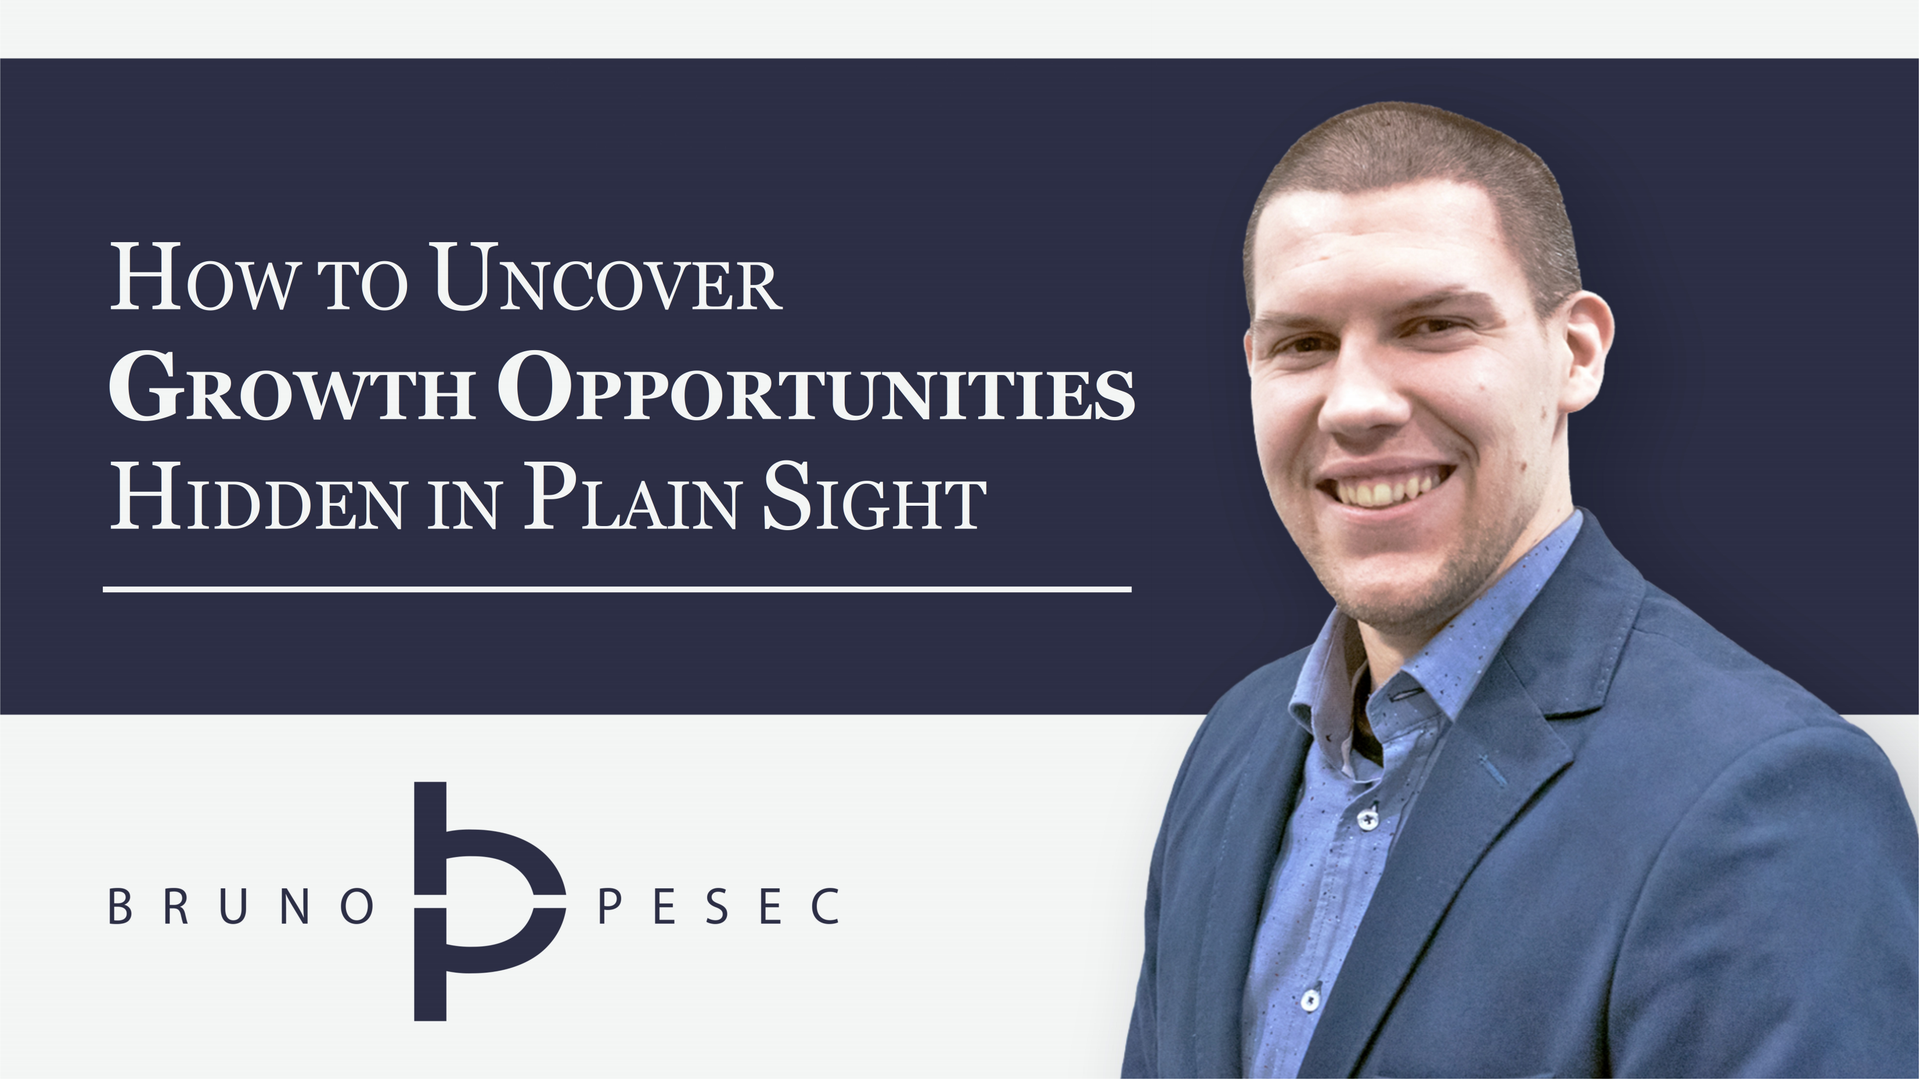 September 22nd: Corporate innovation webinar series by Bruno Pešec: How to uncover growth opportunities hidden in plain sight.